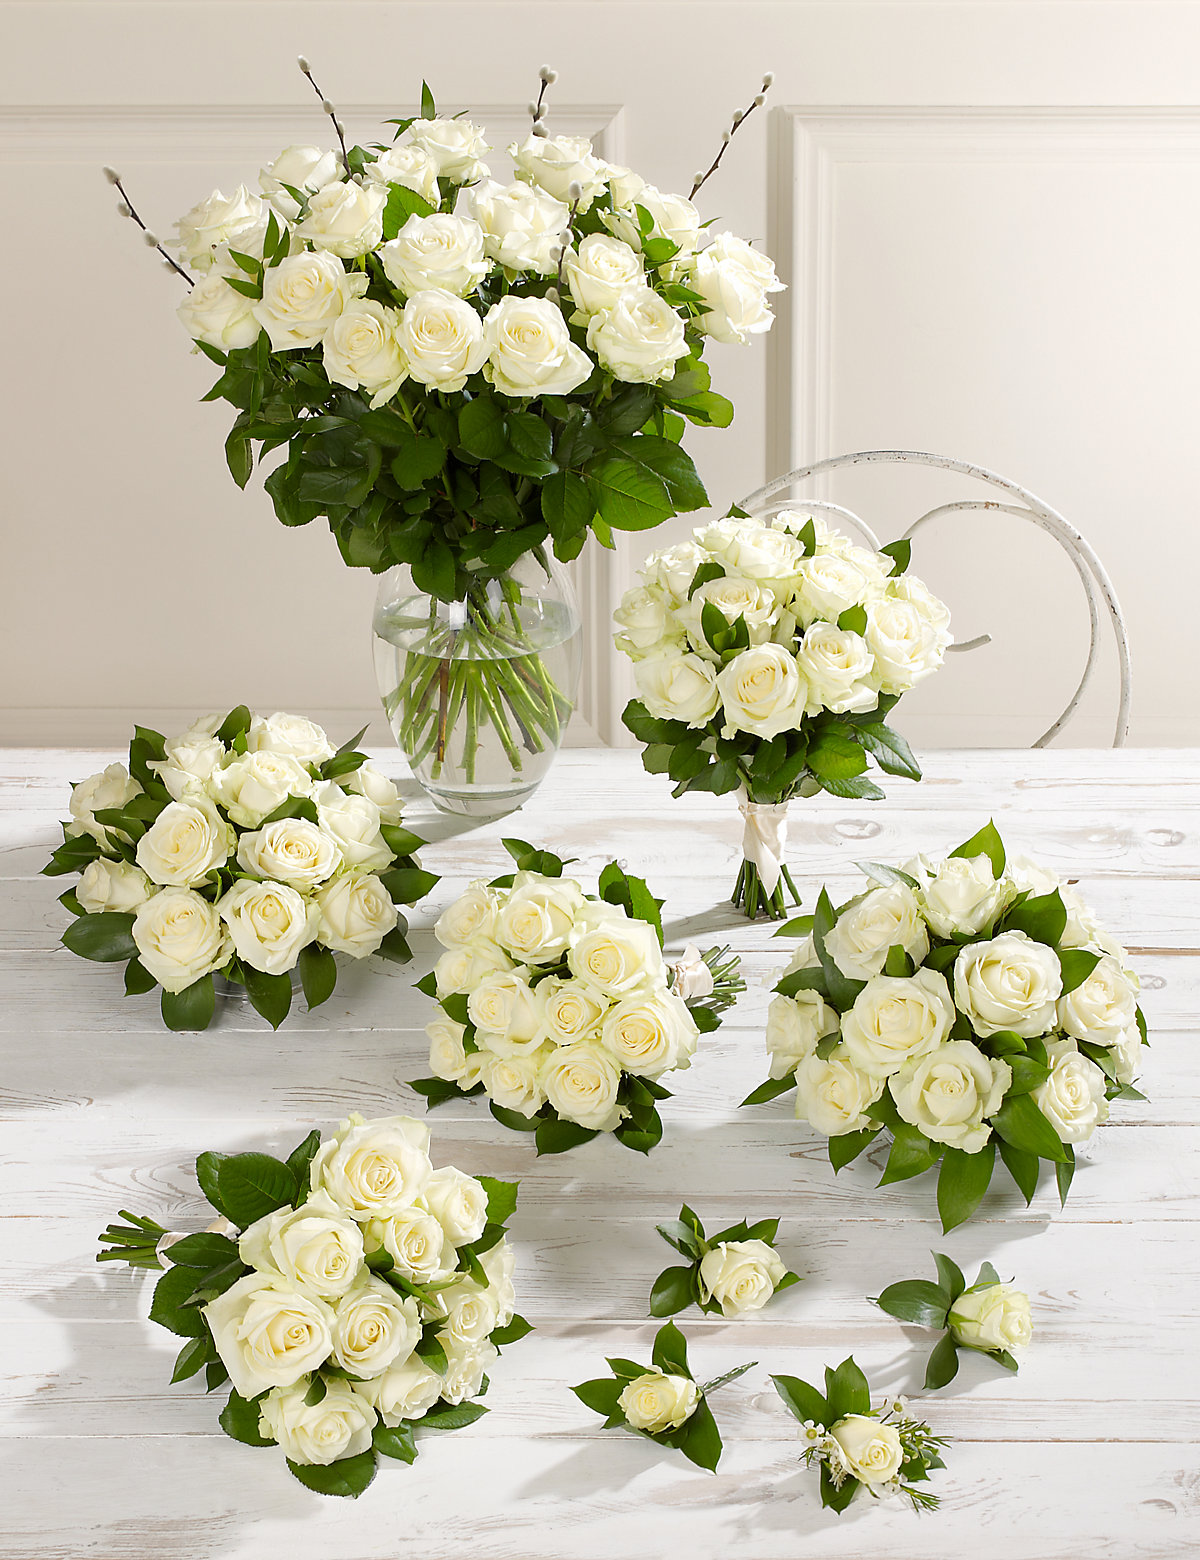 Buy cheap Flower bouquets - compare Flowers prices for ...